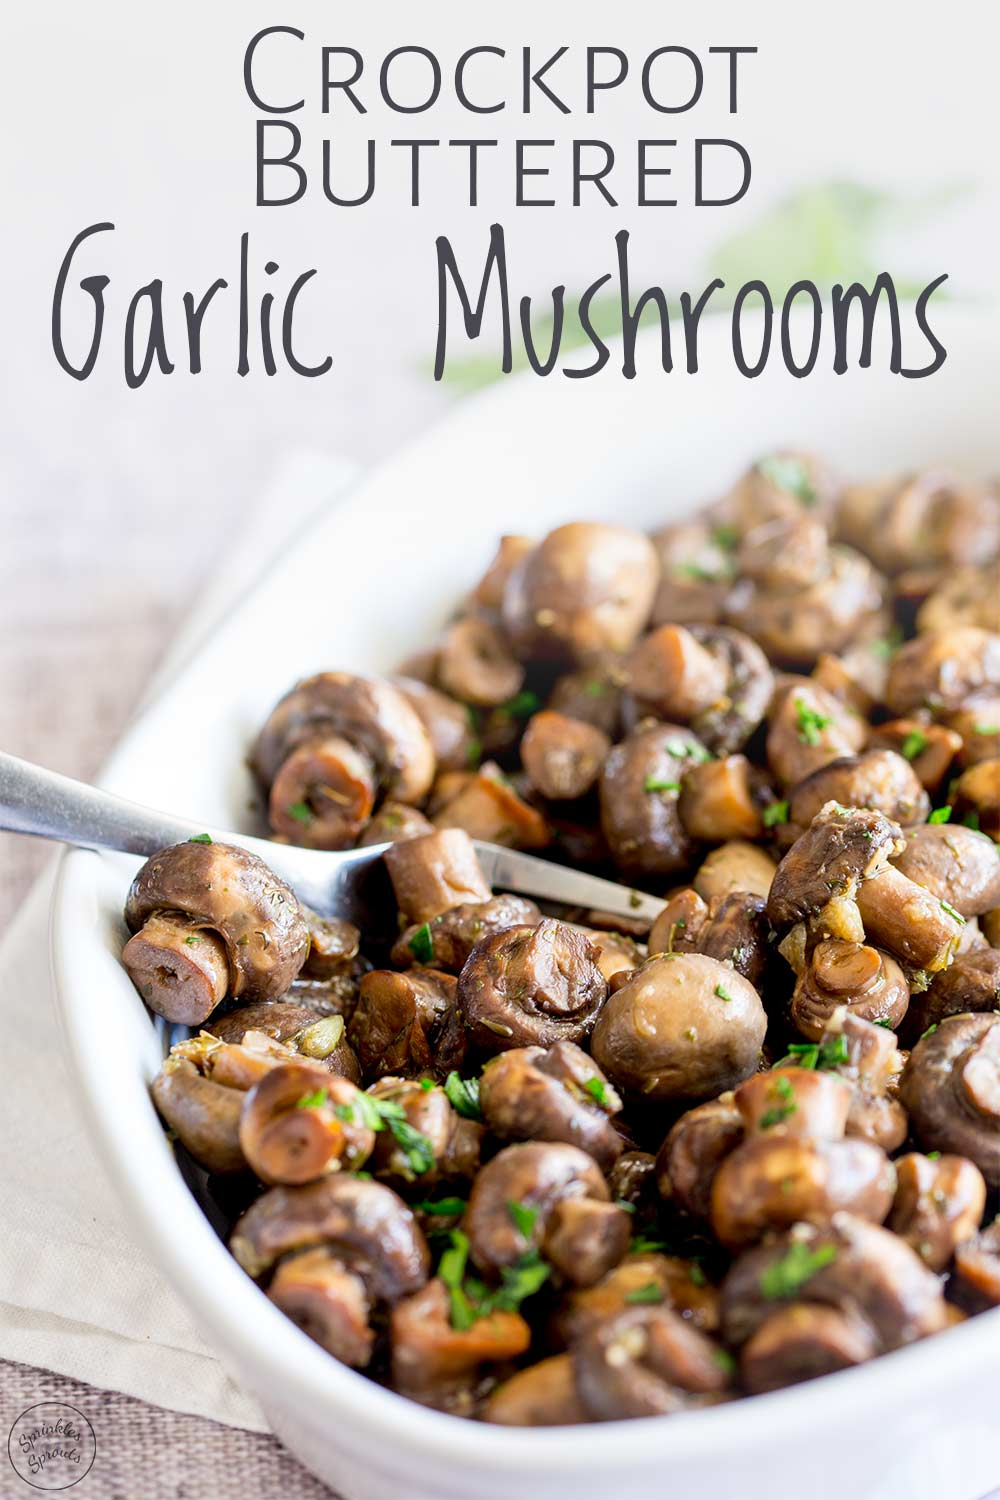 Crockpot Buttered Garlic Mushrooms | Sprinkles and Sprouts